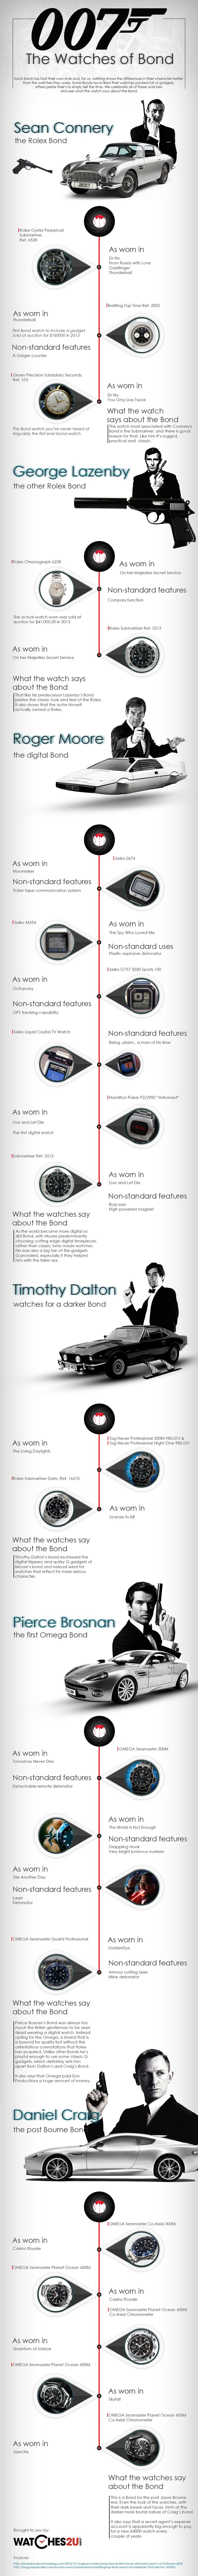 In this infographic, Watches2U hails every watch that has graced the wrist of James Bond and go on to say what their choice of watch says about their interpretation of the role. From the classic Rolex Submariner, through the digital era of Moore, to the Omega years of Brosnan and Craig, every watch has added in its own way to the story of James Bond.